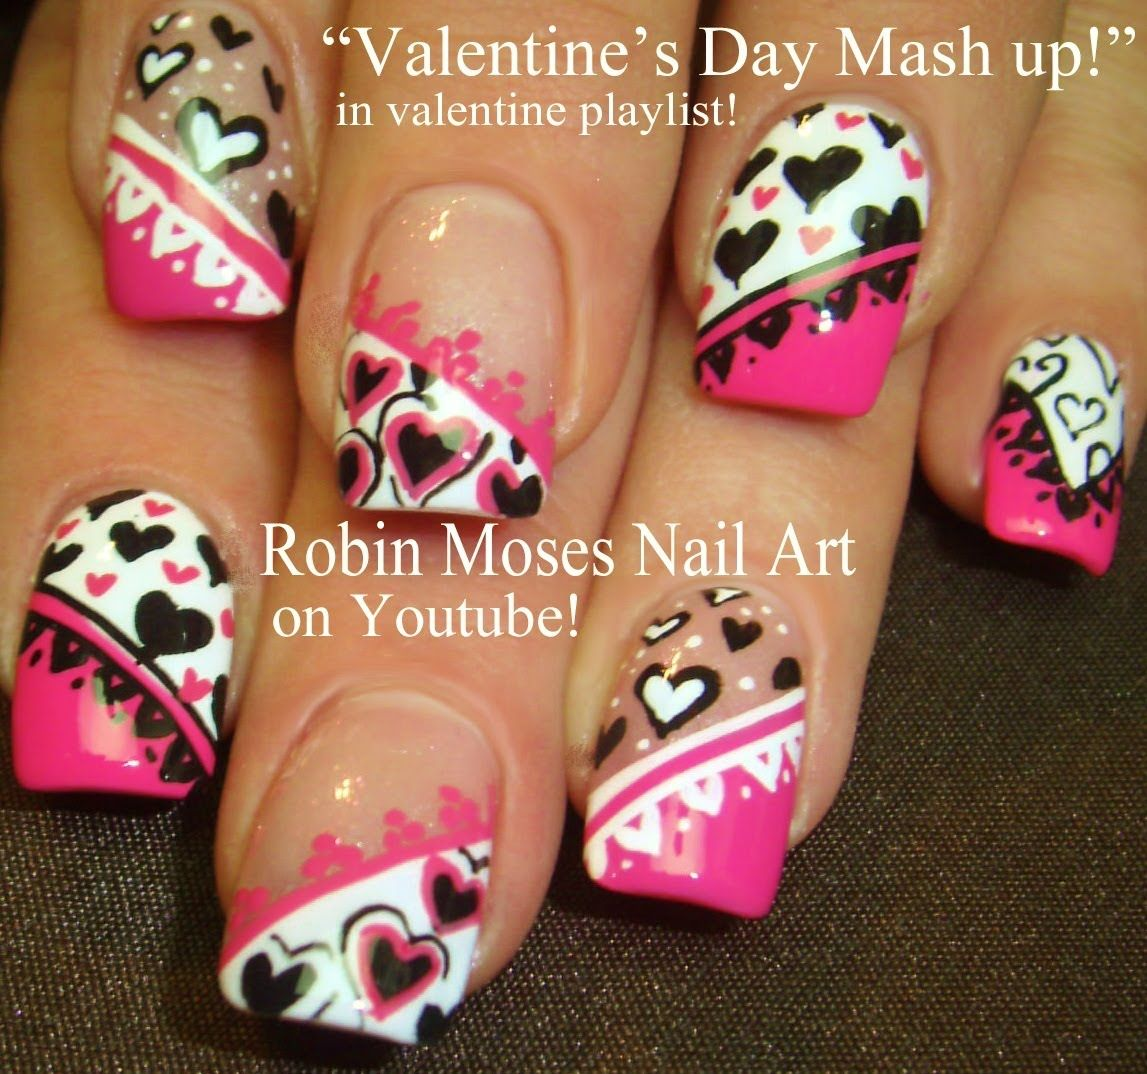 Valentine Nail Art Mash Up by Robin Moses! IN the VALENTINE PLAYLIST ...